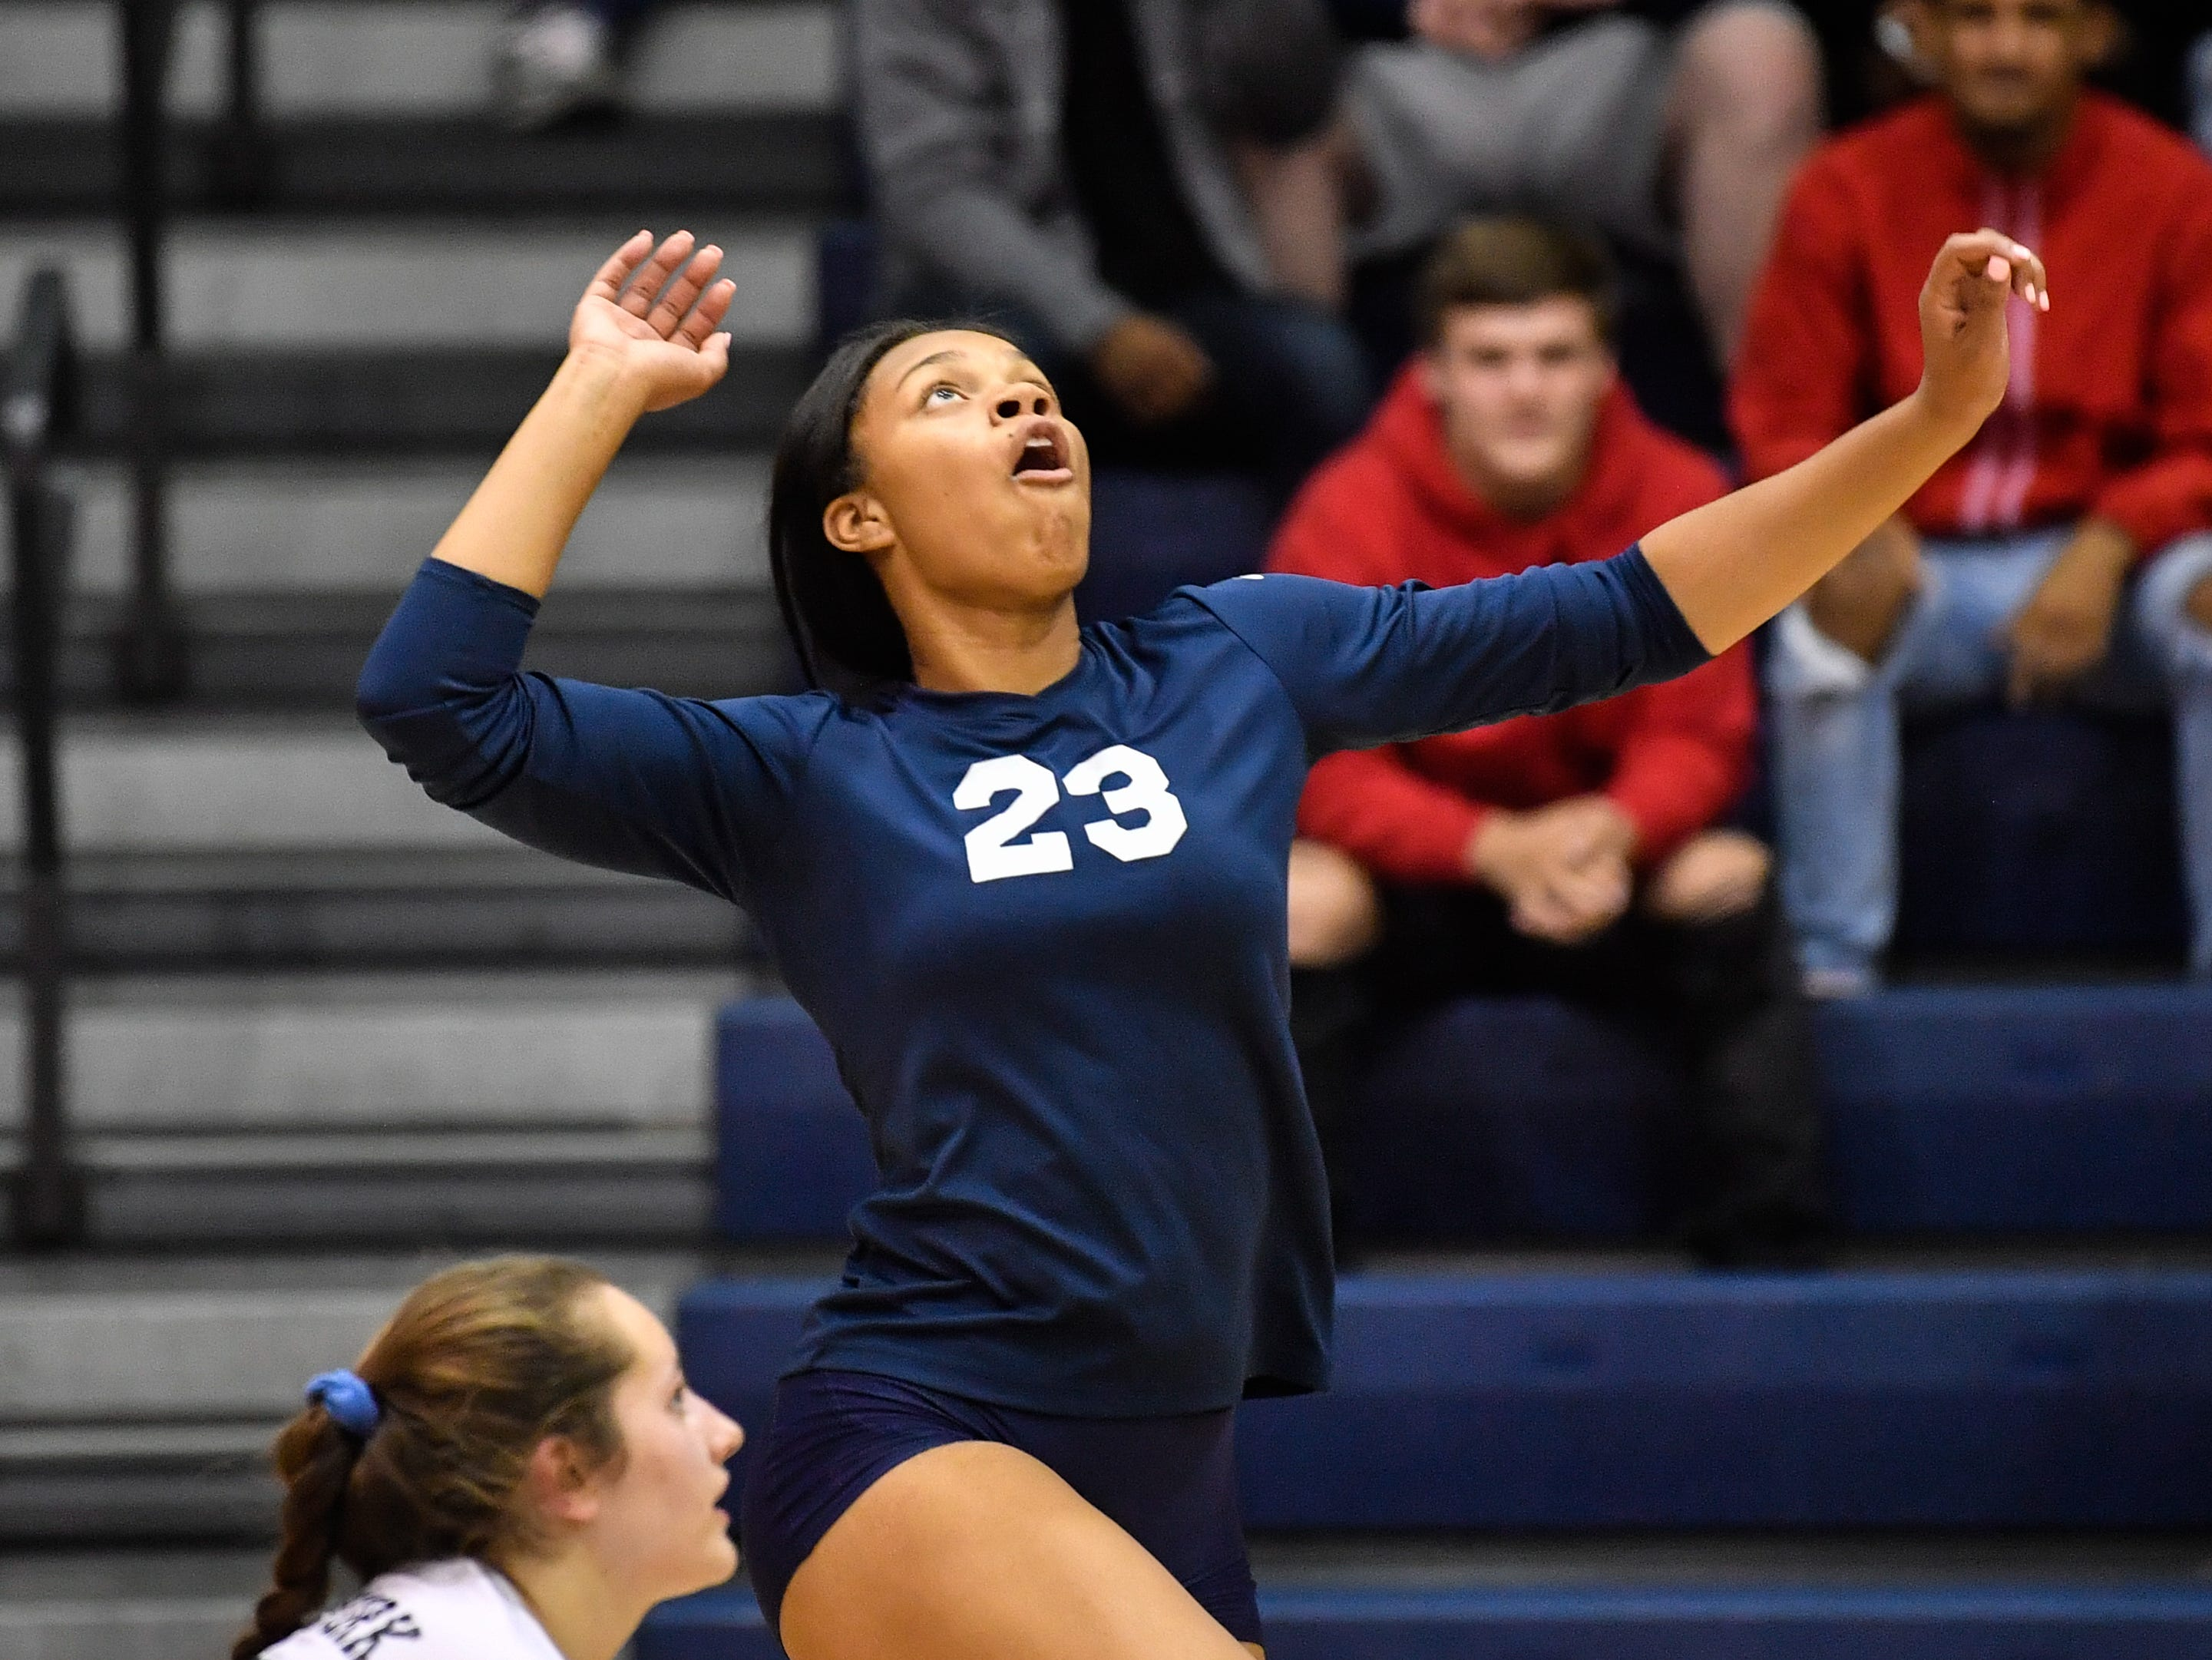 Alayna Harris (23) rises up for the spike during the YAIAA league volleyball tournament semifinals between West York and Dover, Tuesday, October 23, 2018. The Bulldogs defeated the Eagles 3-1.